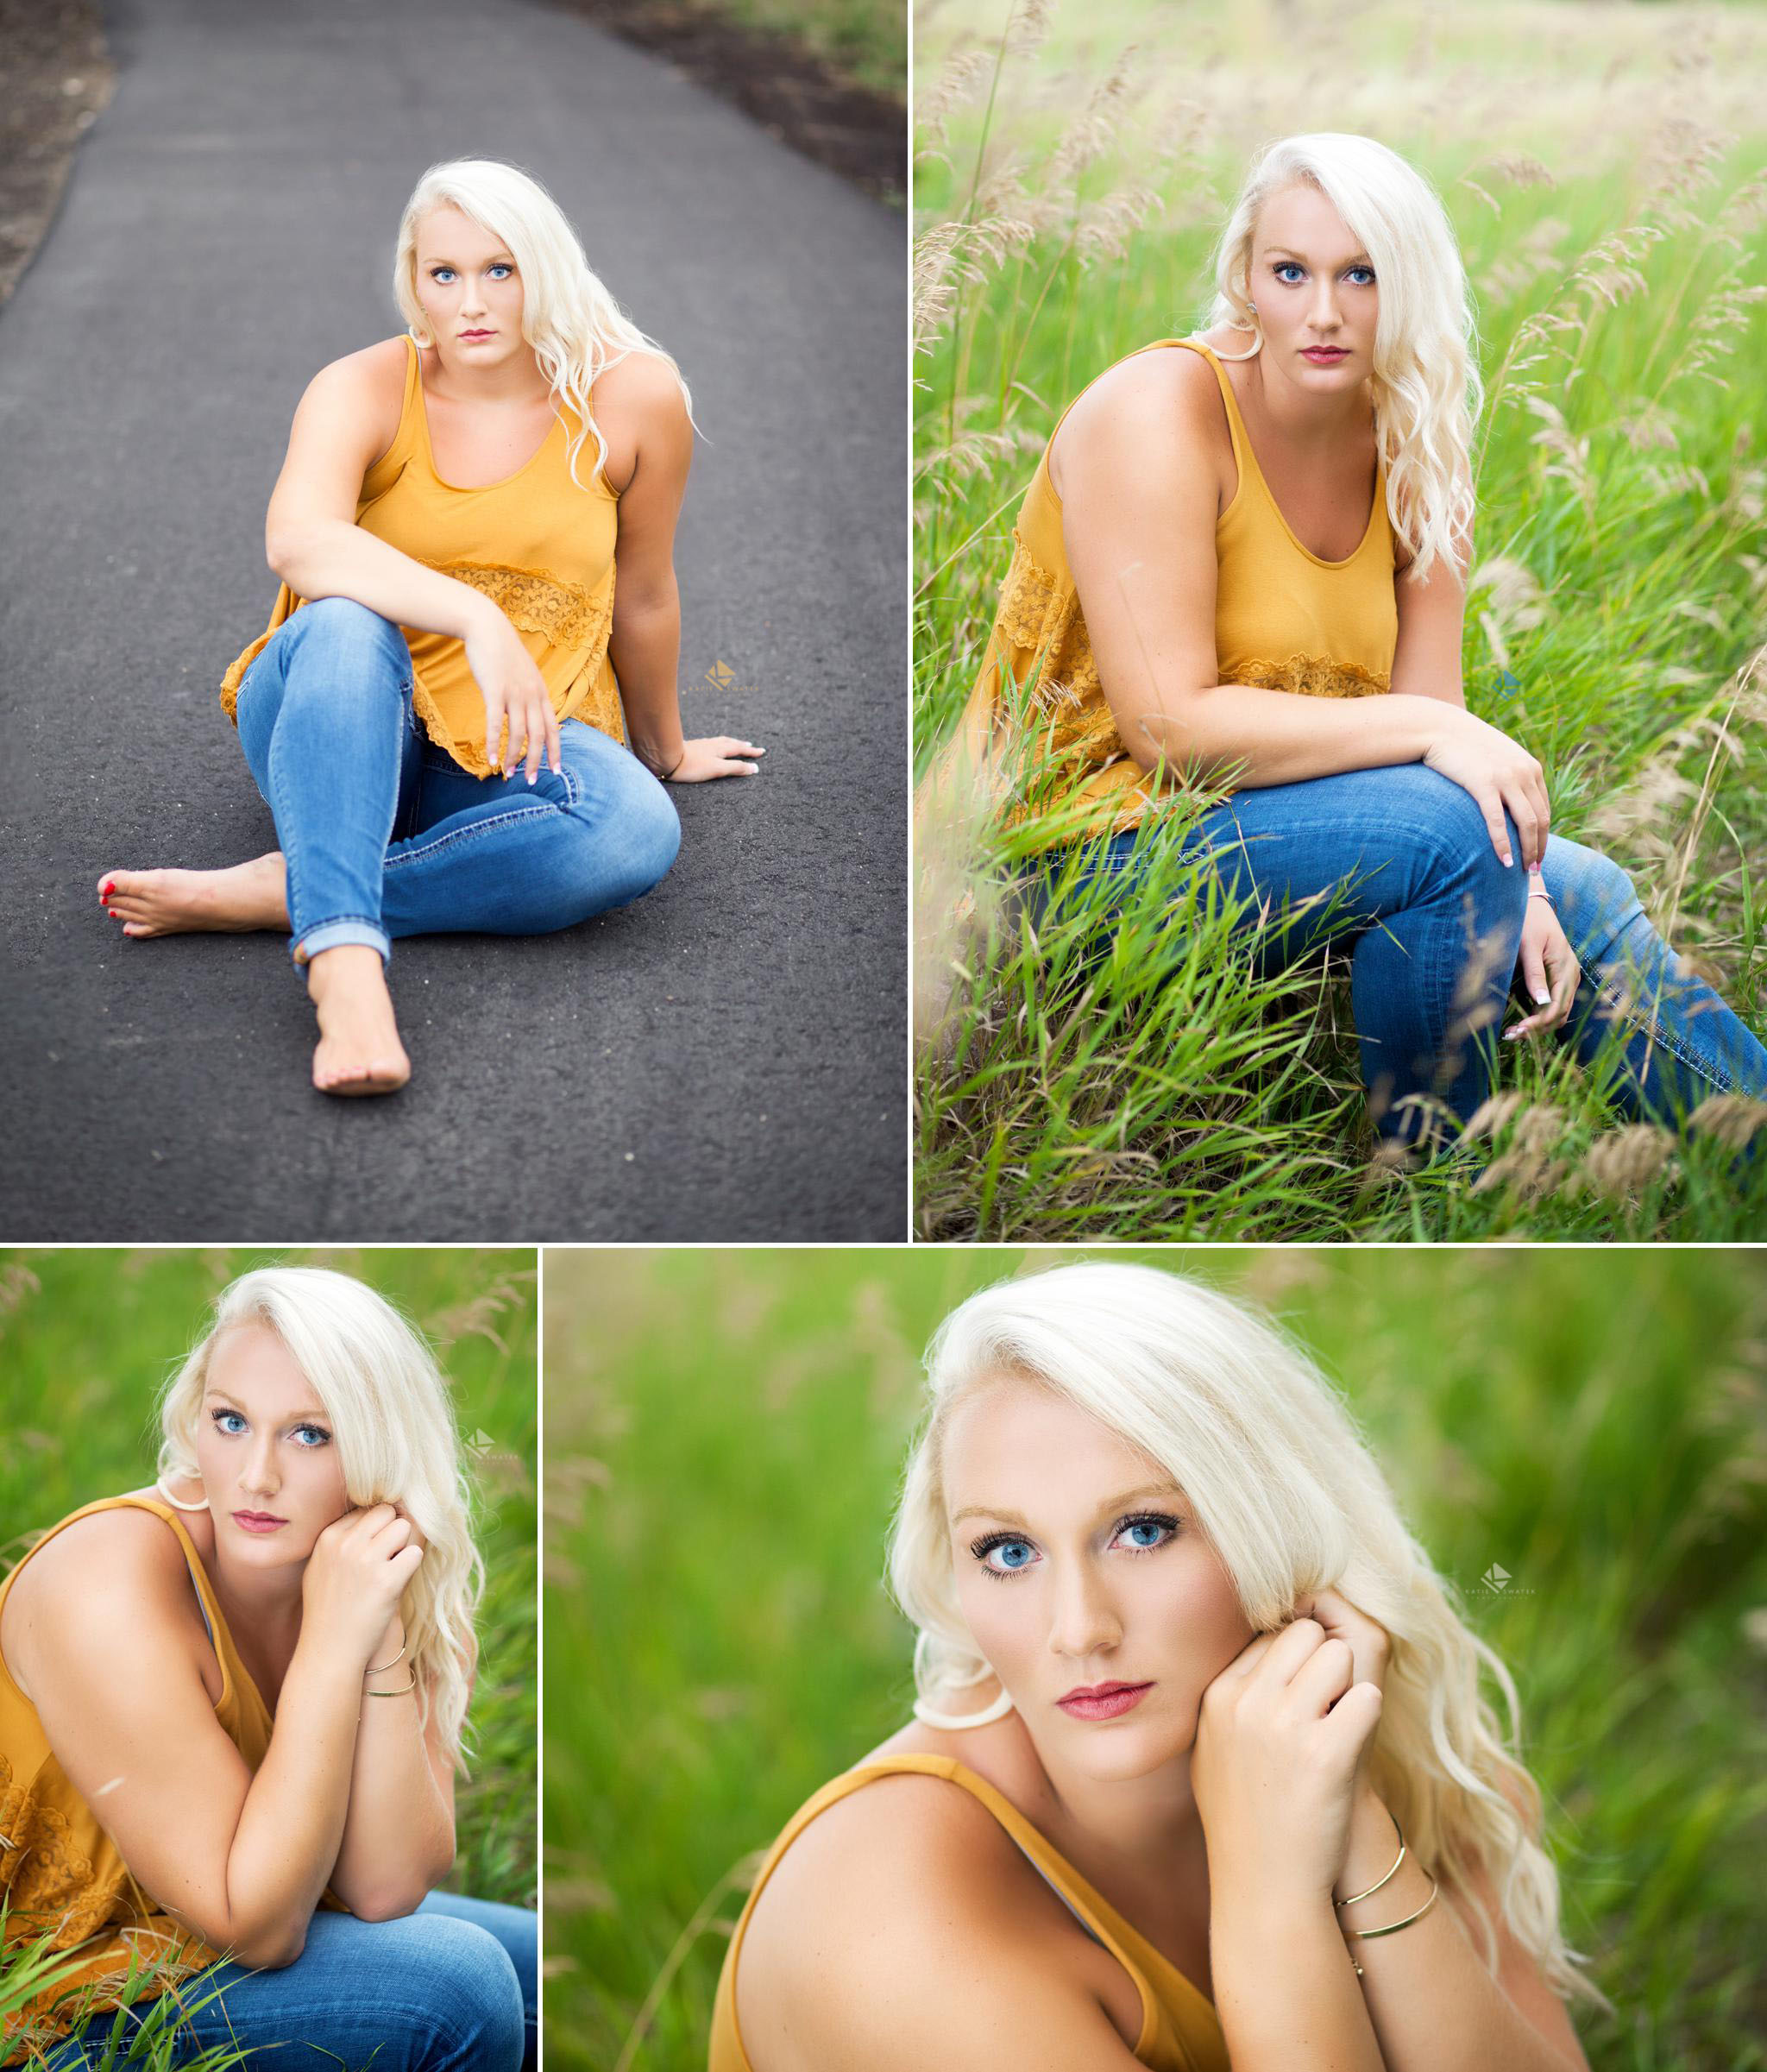 blonde senior girl in a mustard colored tank top and a pair of jeans sitting on a road and sitting on a rock in a green field